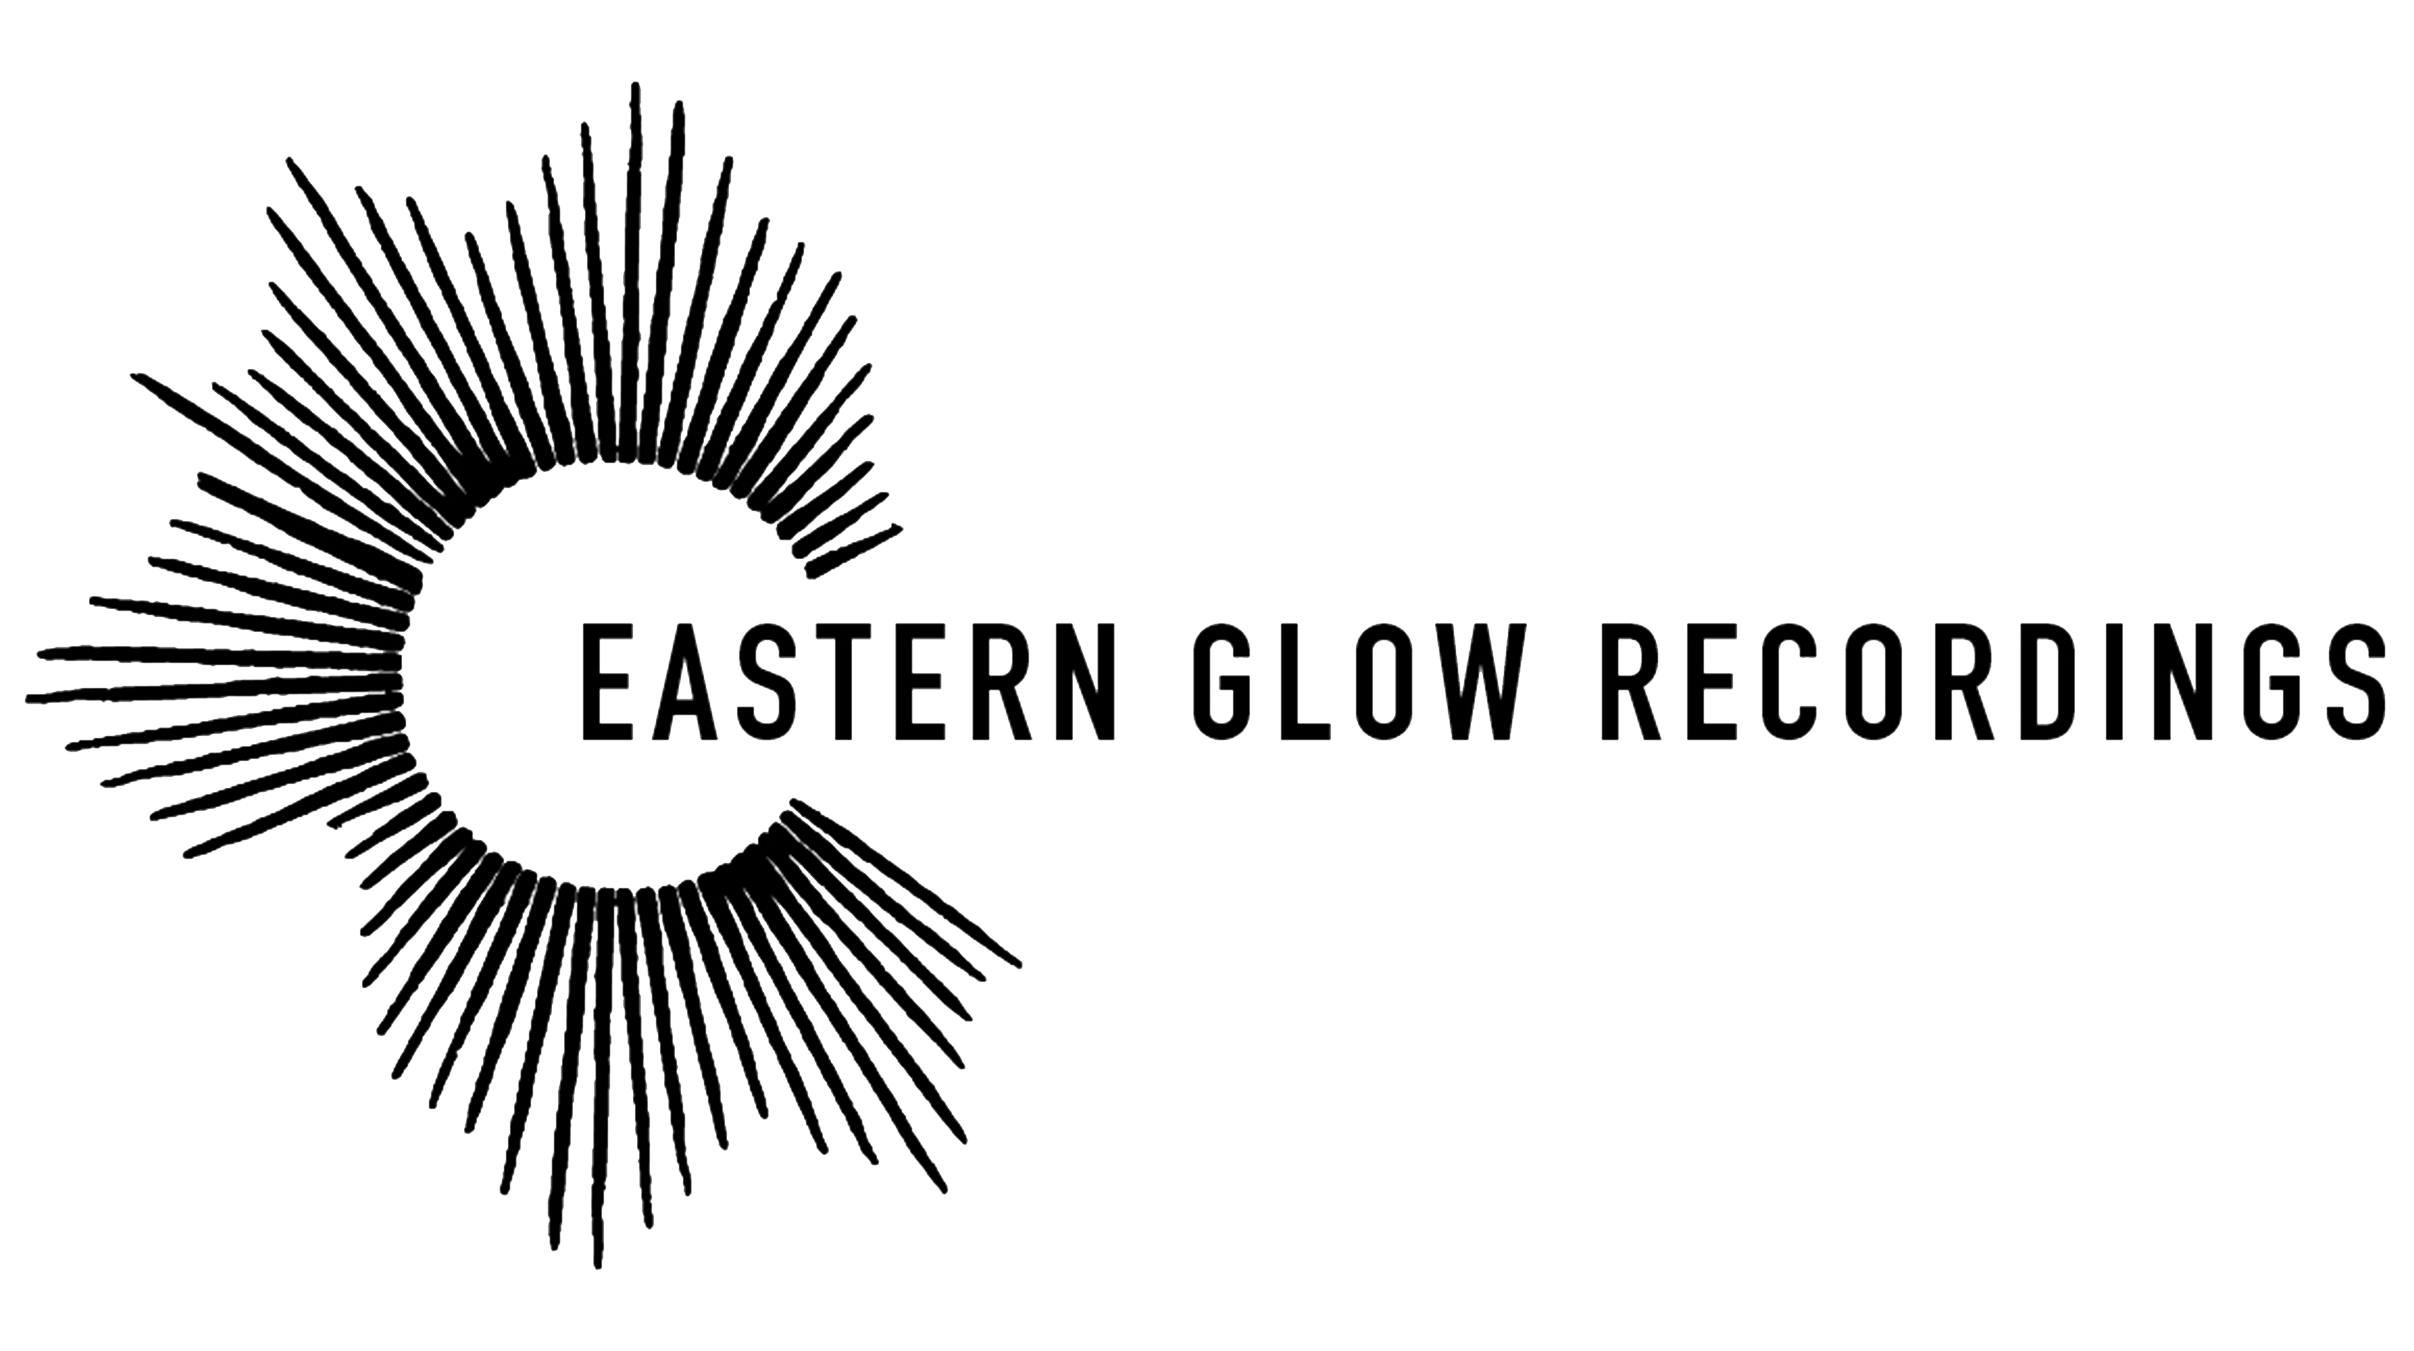 Eastern Glow Recordings